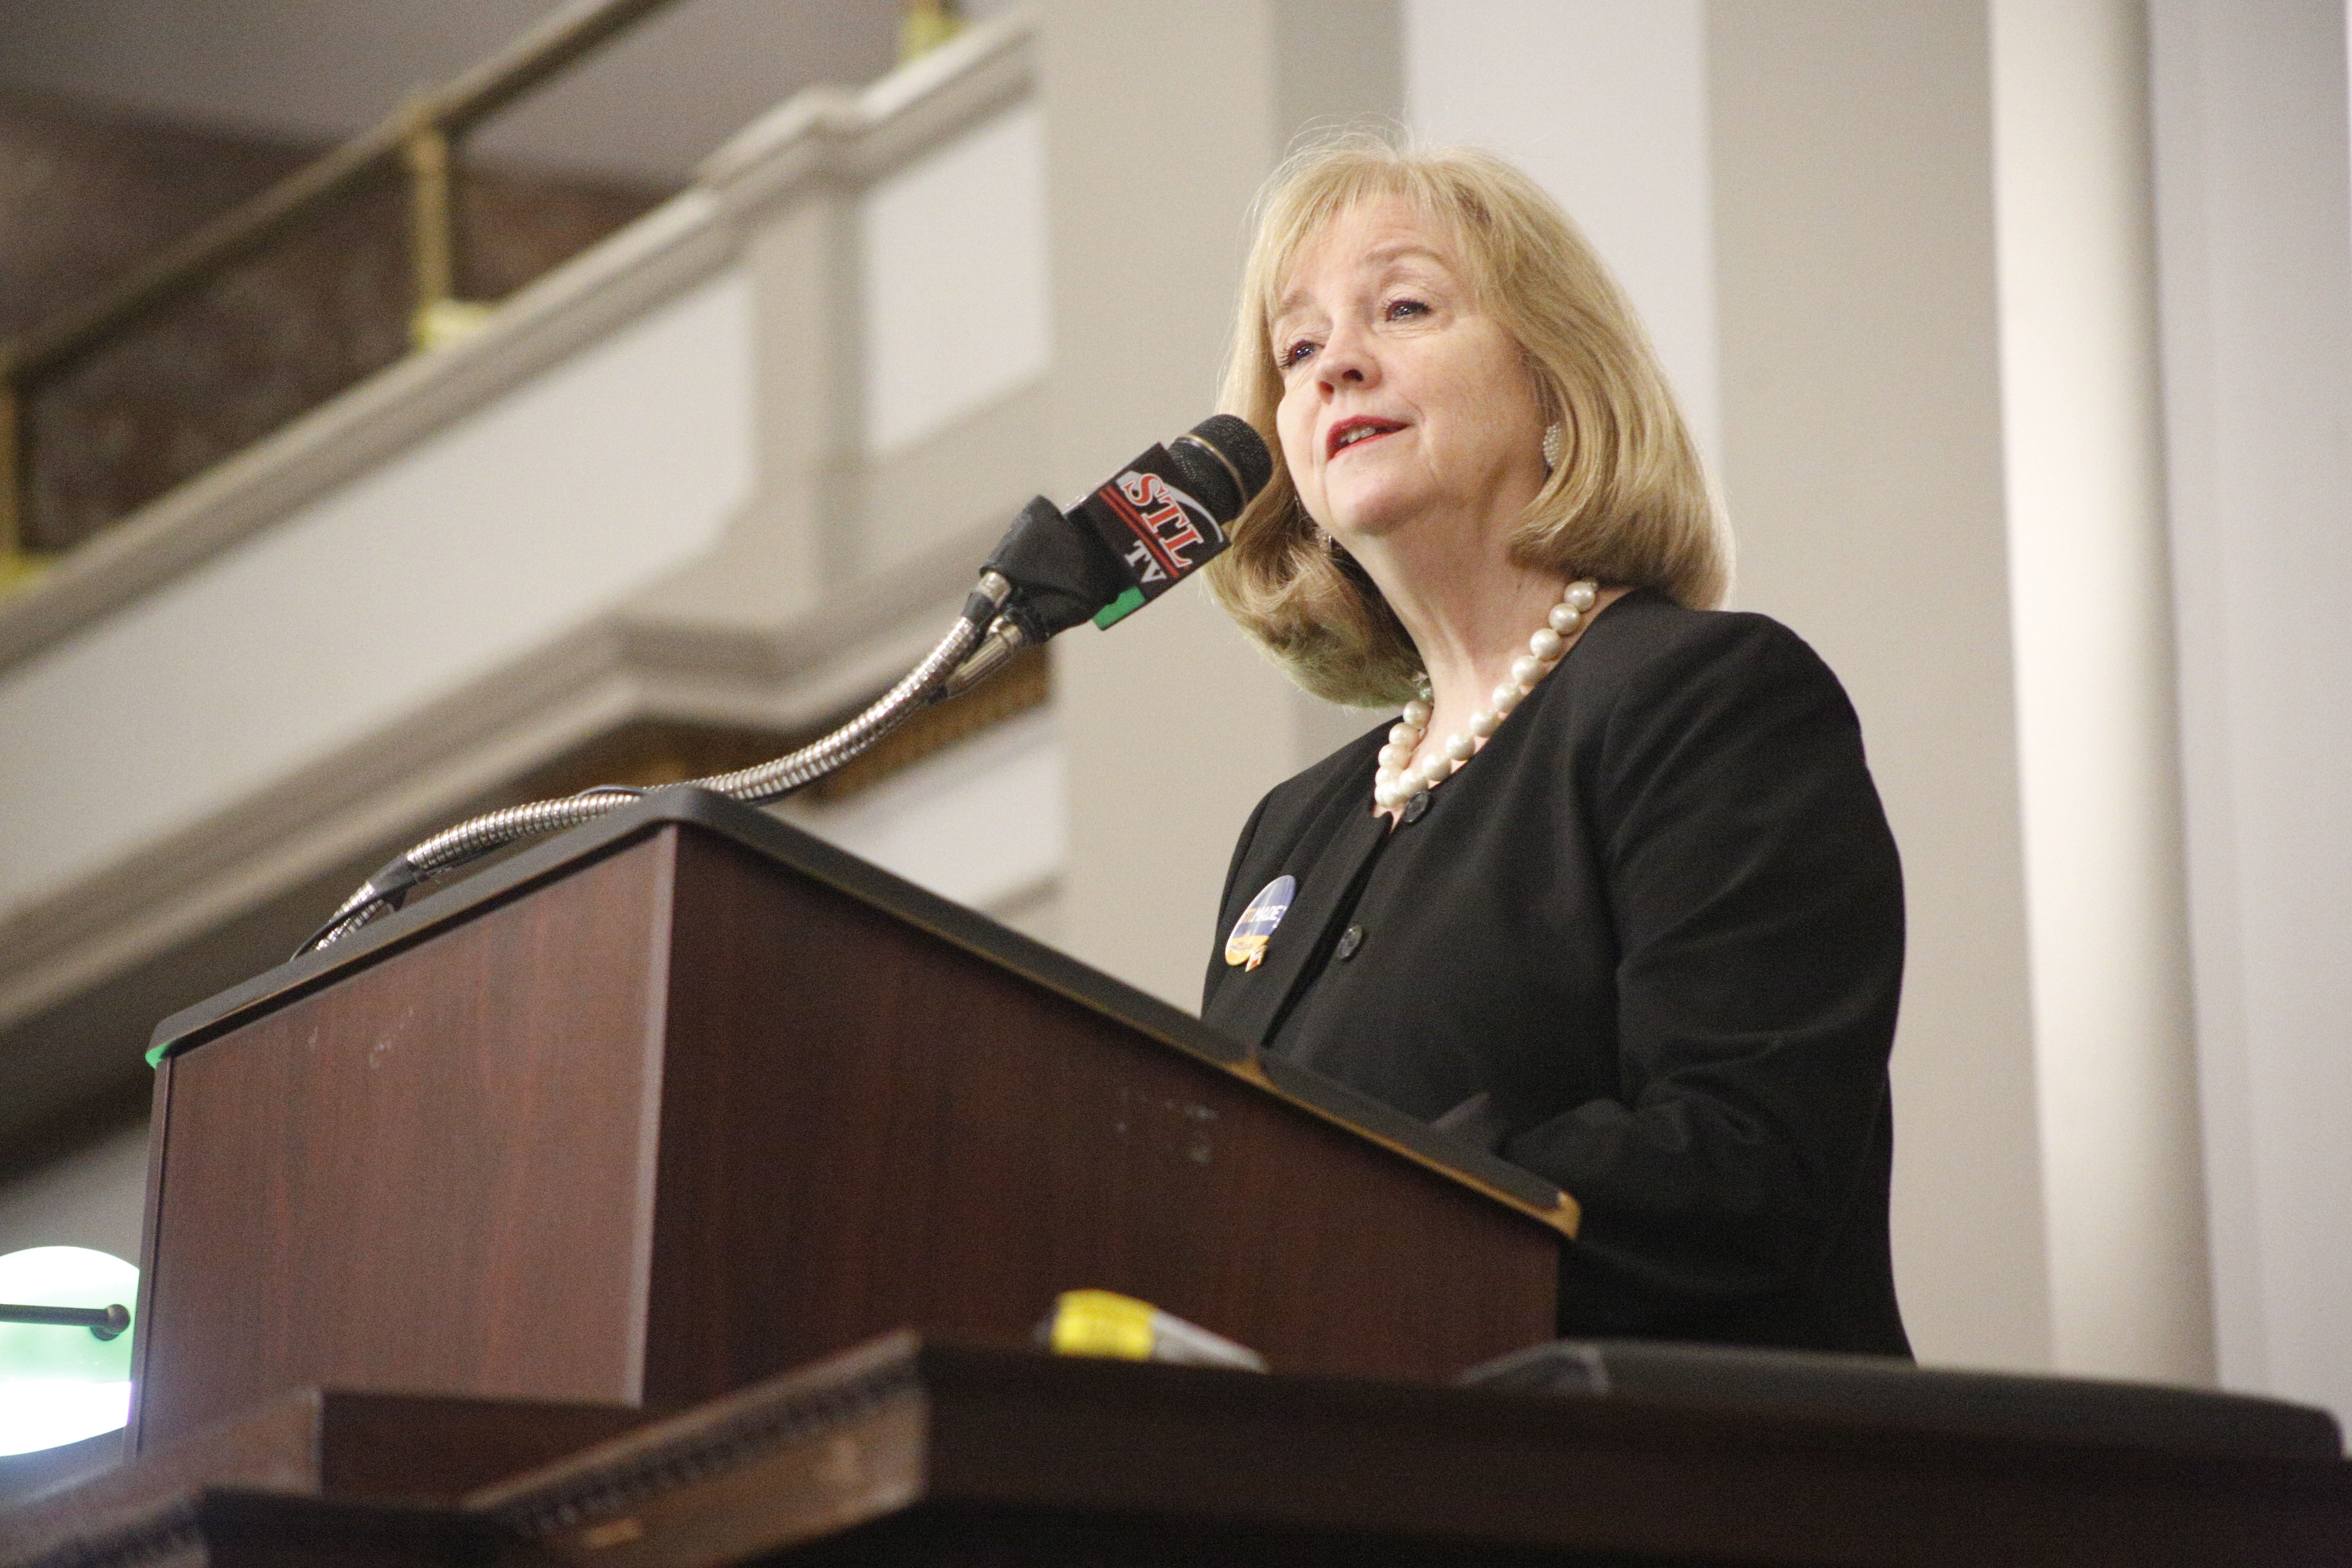 Krewson offers upbeat State of the City address to aldermen